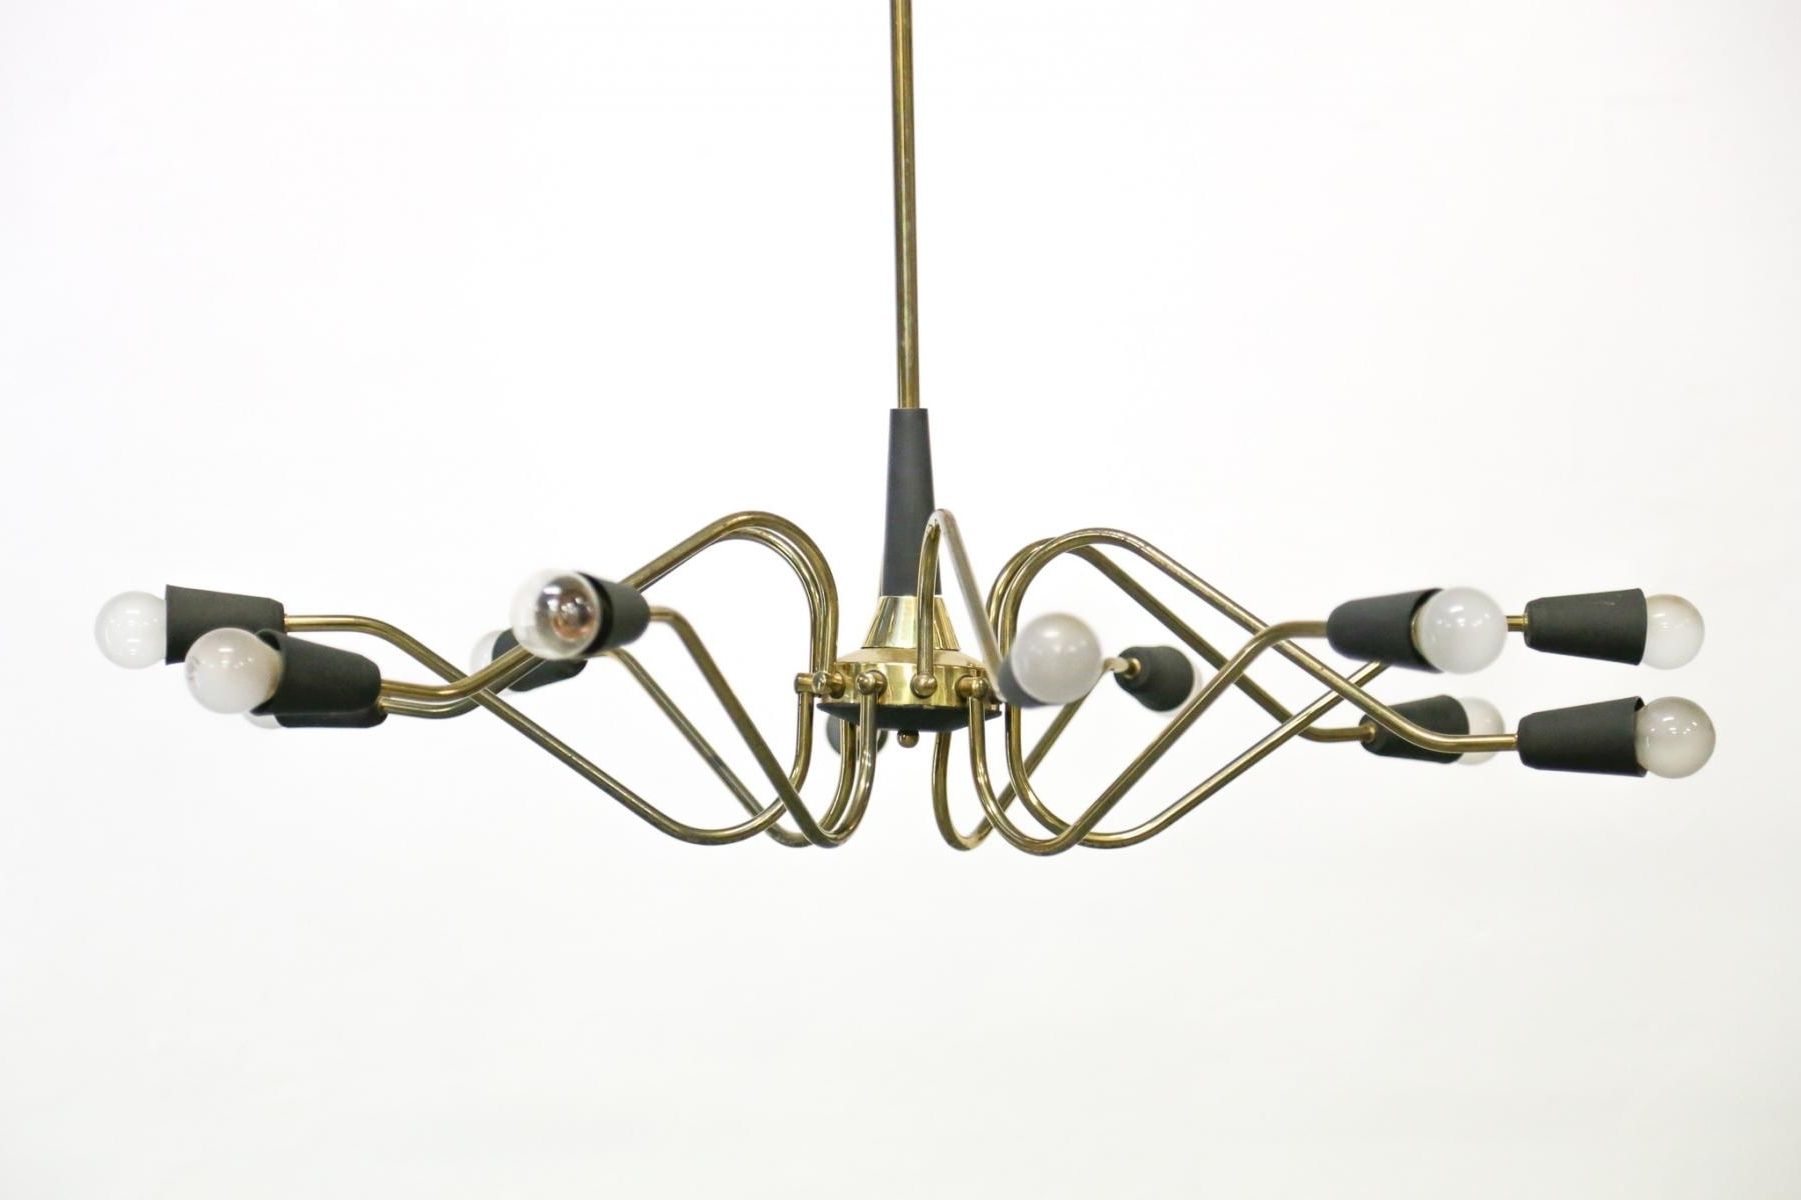 Vintage Italian Chandelier From Stilnovo For Sale At Pamono In Most Up To Date Vintage Italian Chandelier (View 11 of 15)